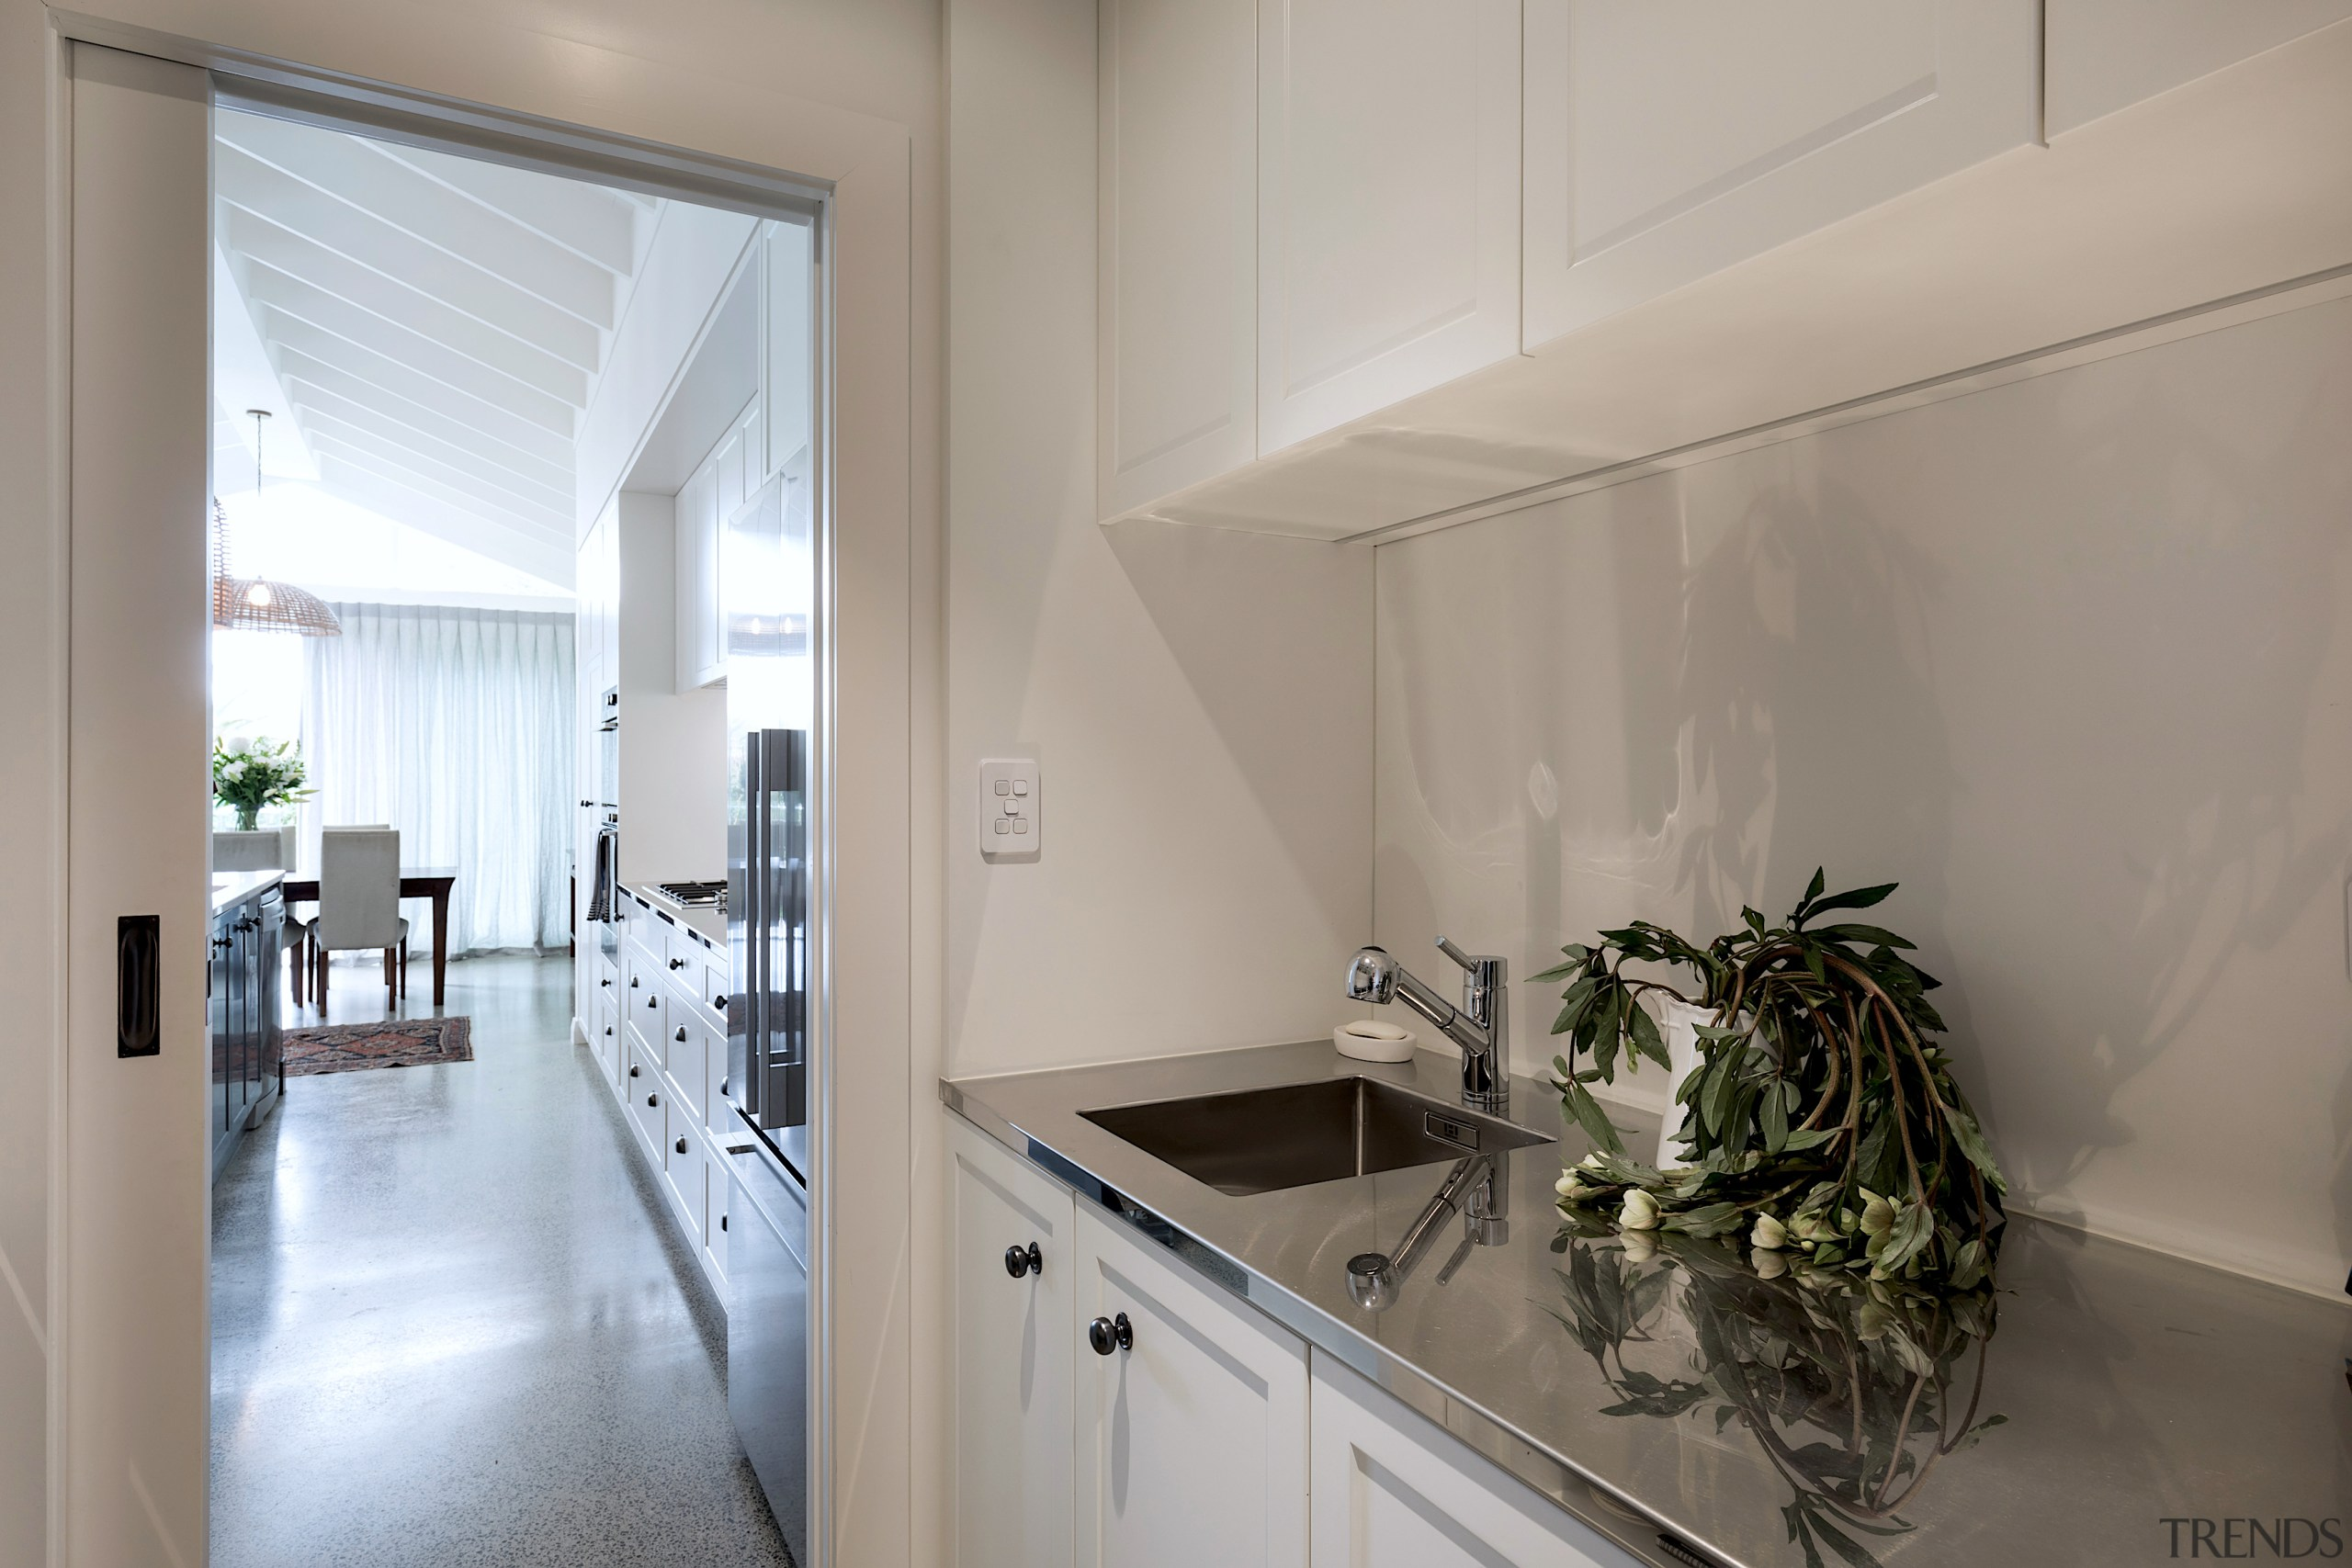 The well-appointed scullery looks out to the kitchen